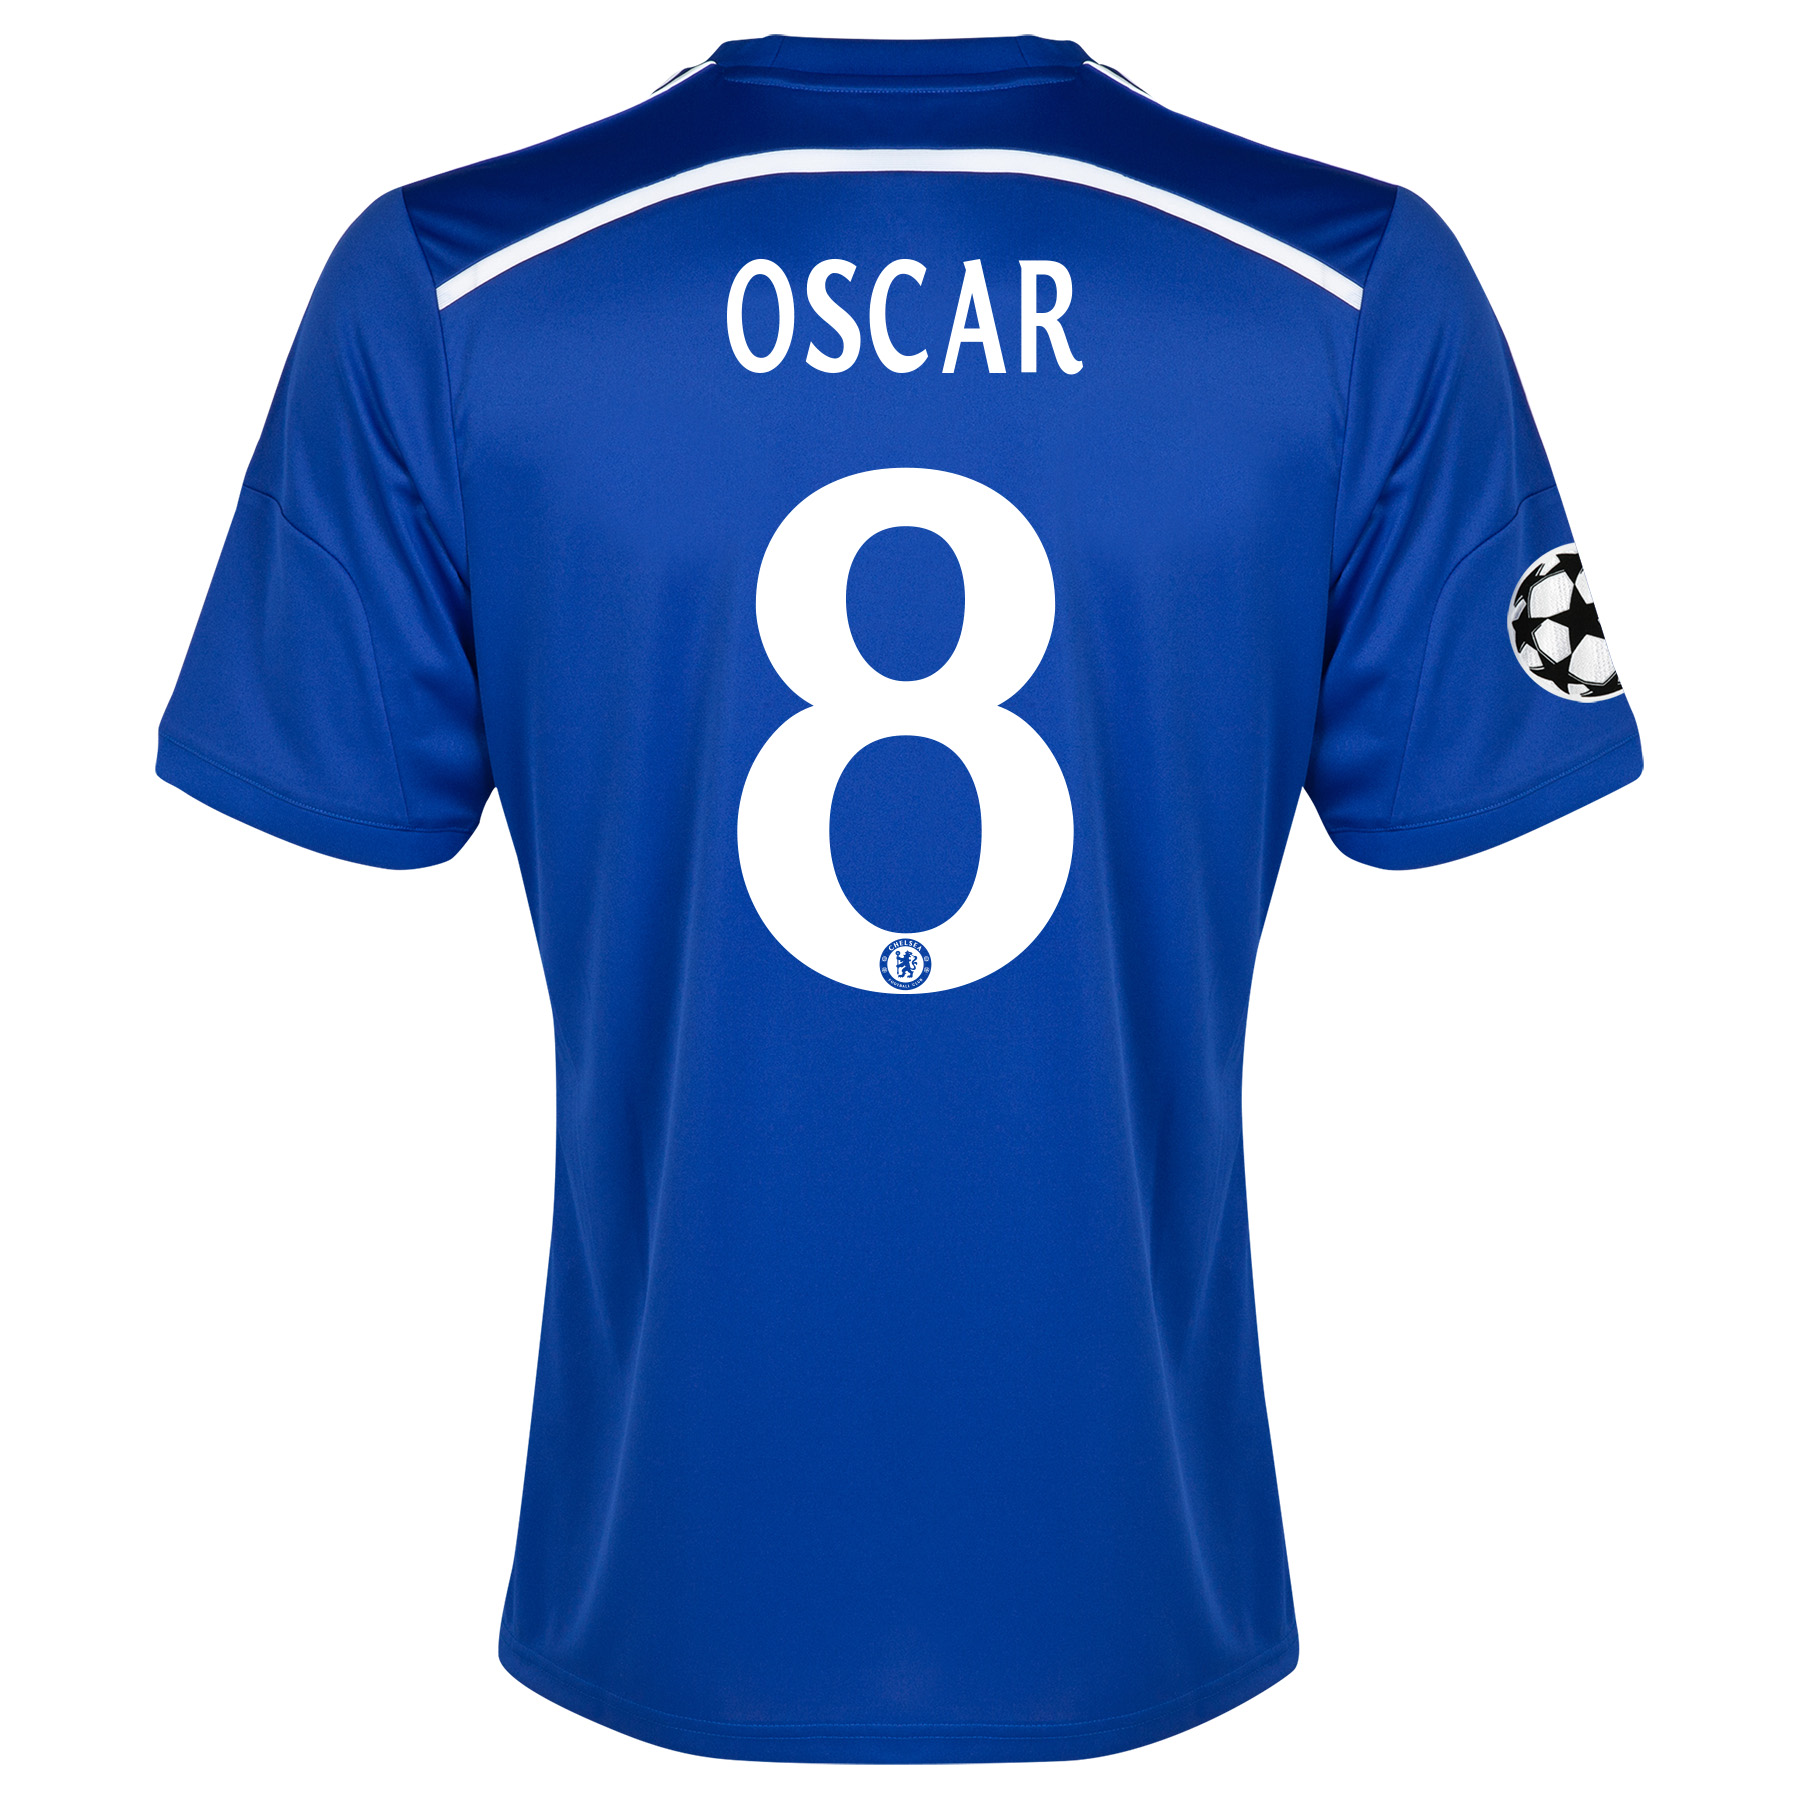 Chelsea UEFA Champions League Home Shirt 2014/15 - Outsize Blue with Oscar 11 printing